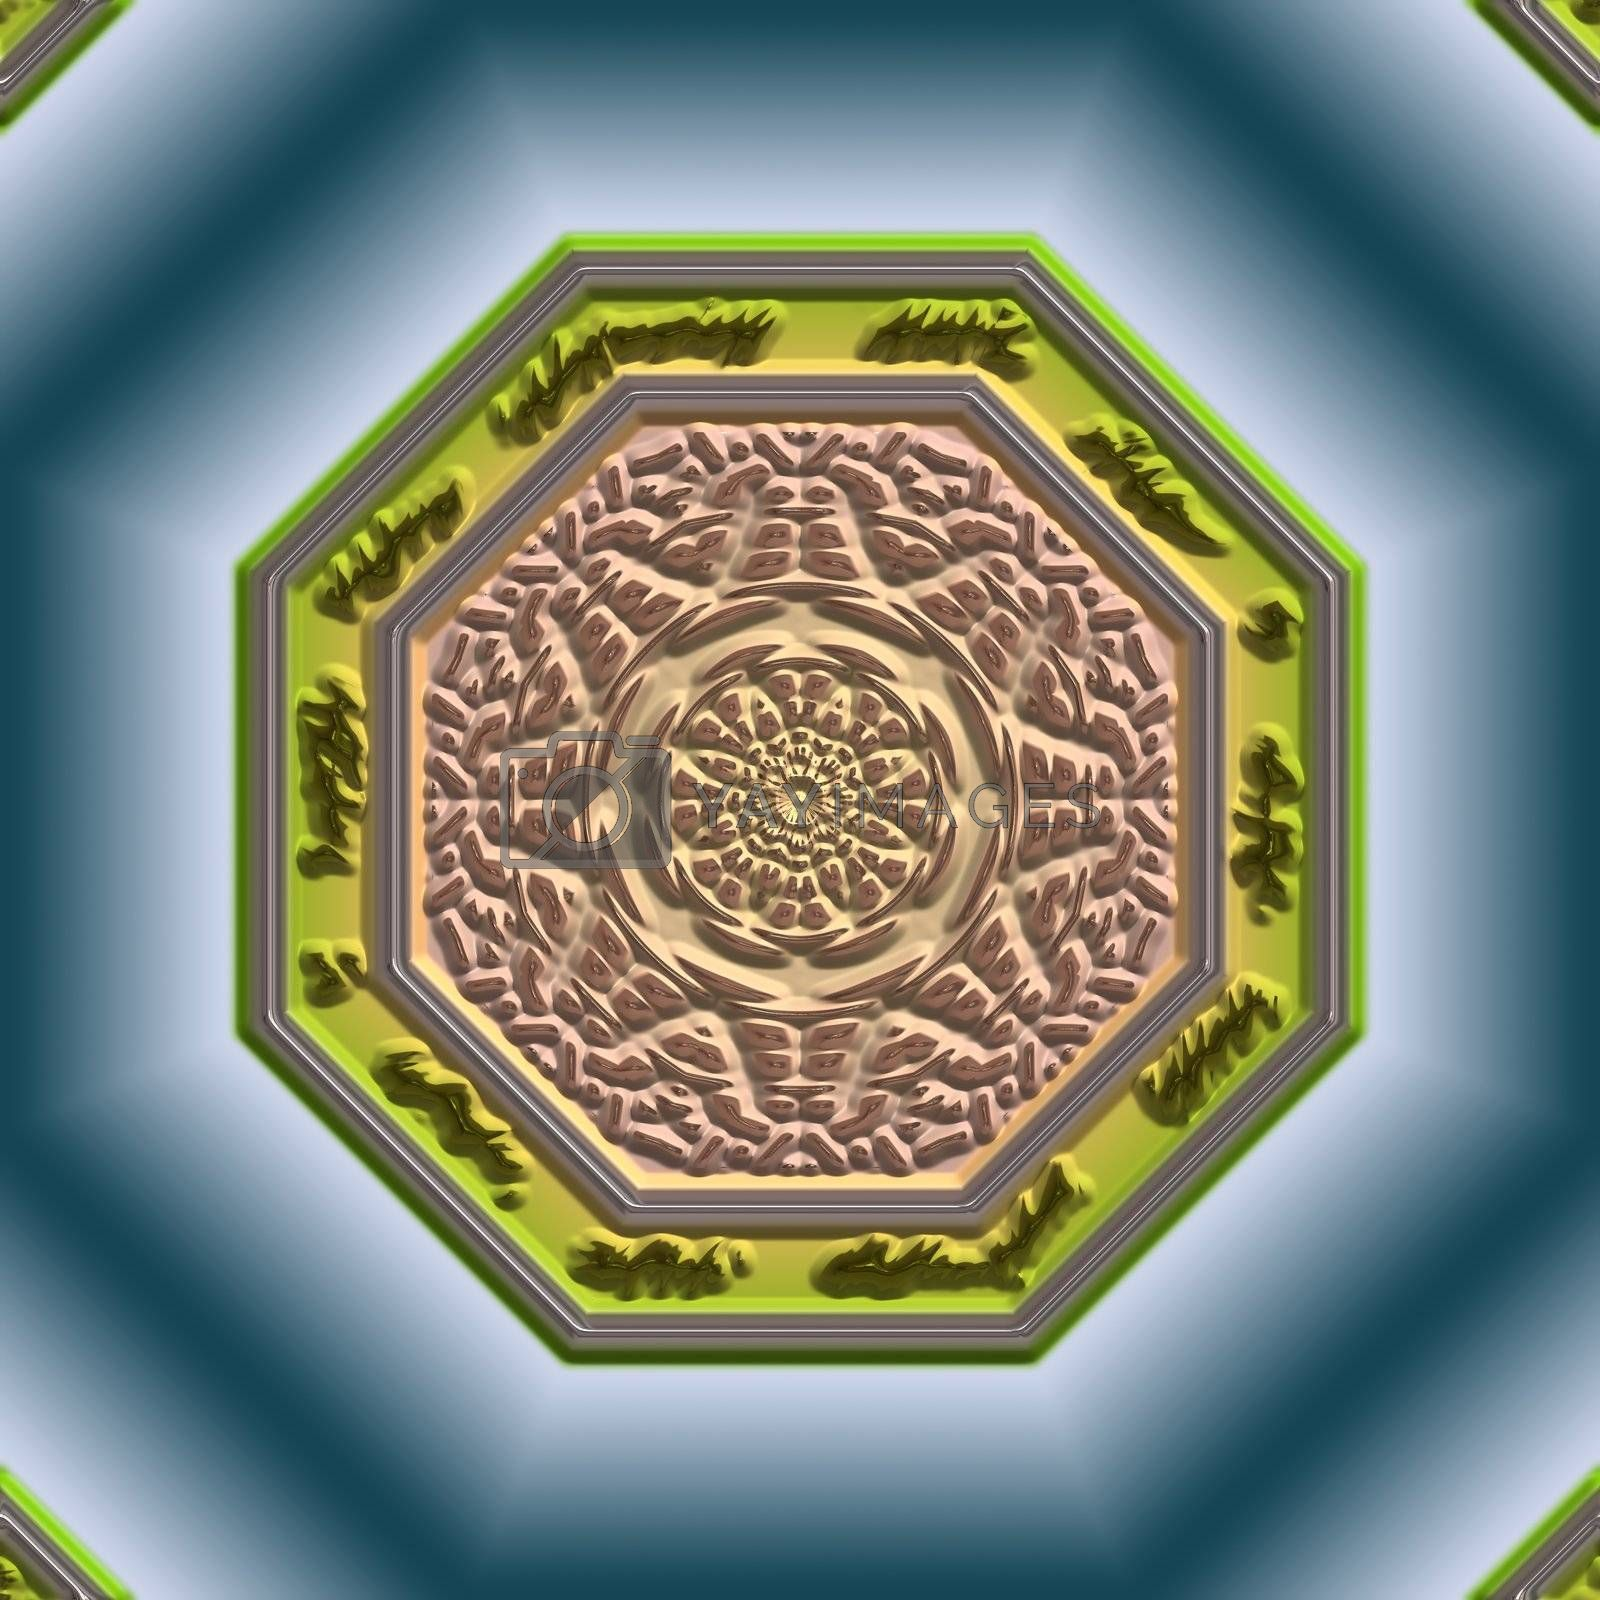 Royalty free image of Mandala Eastern abstract design by kgtoh